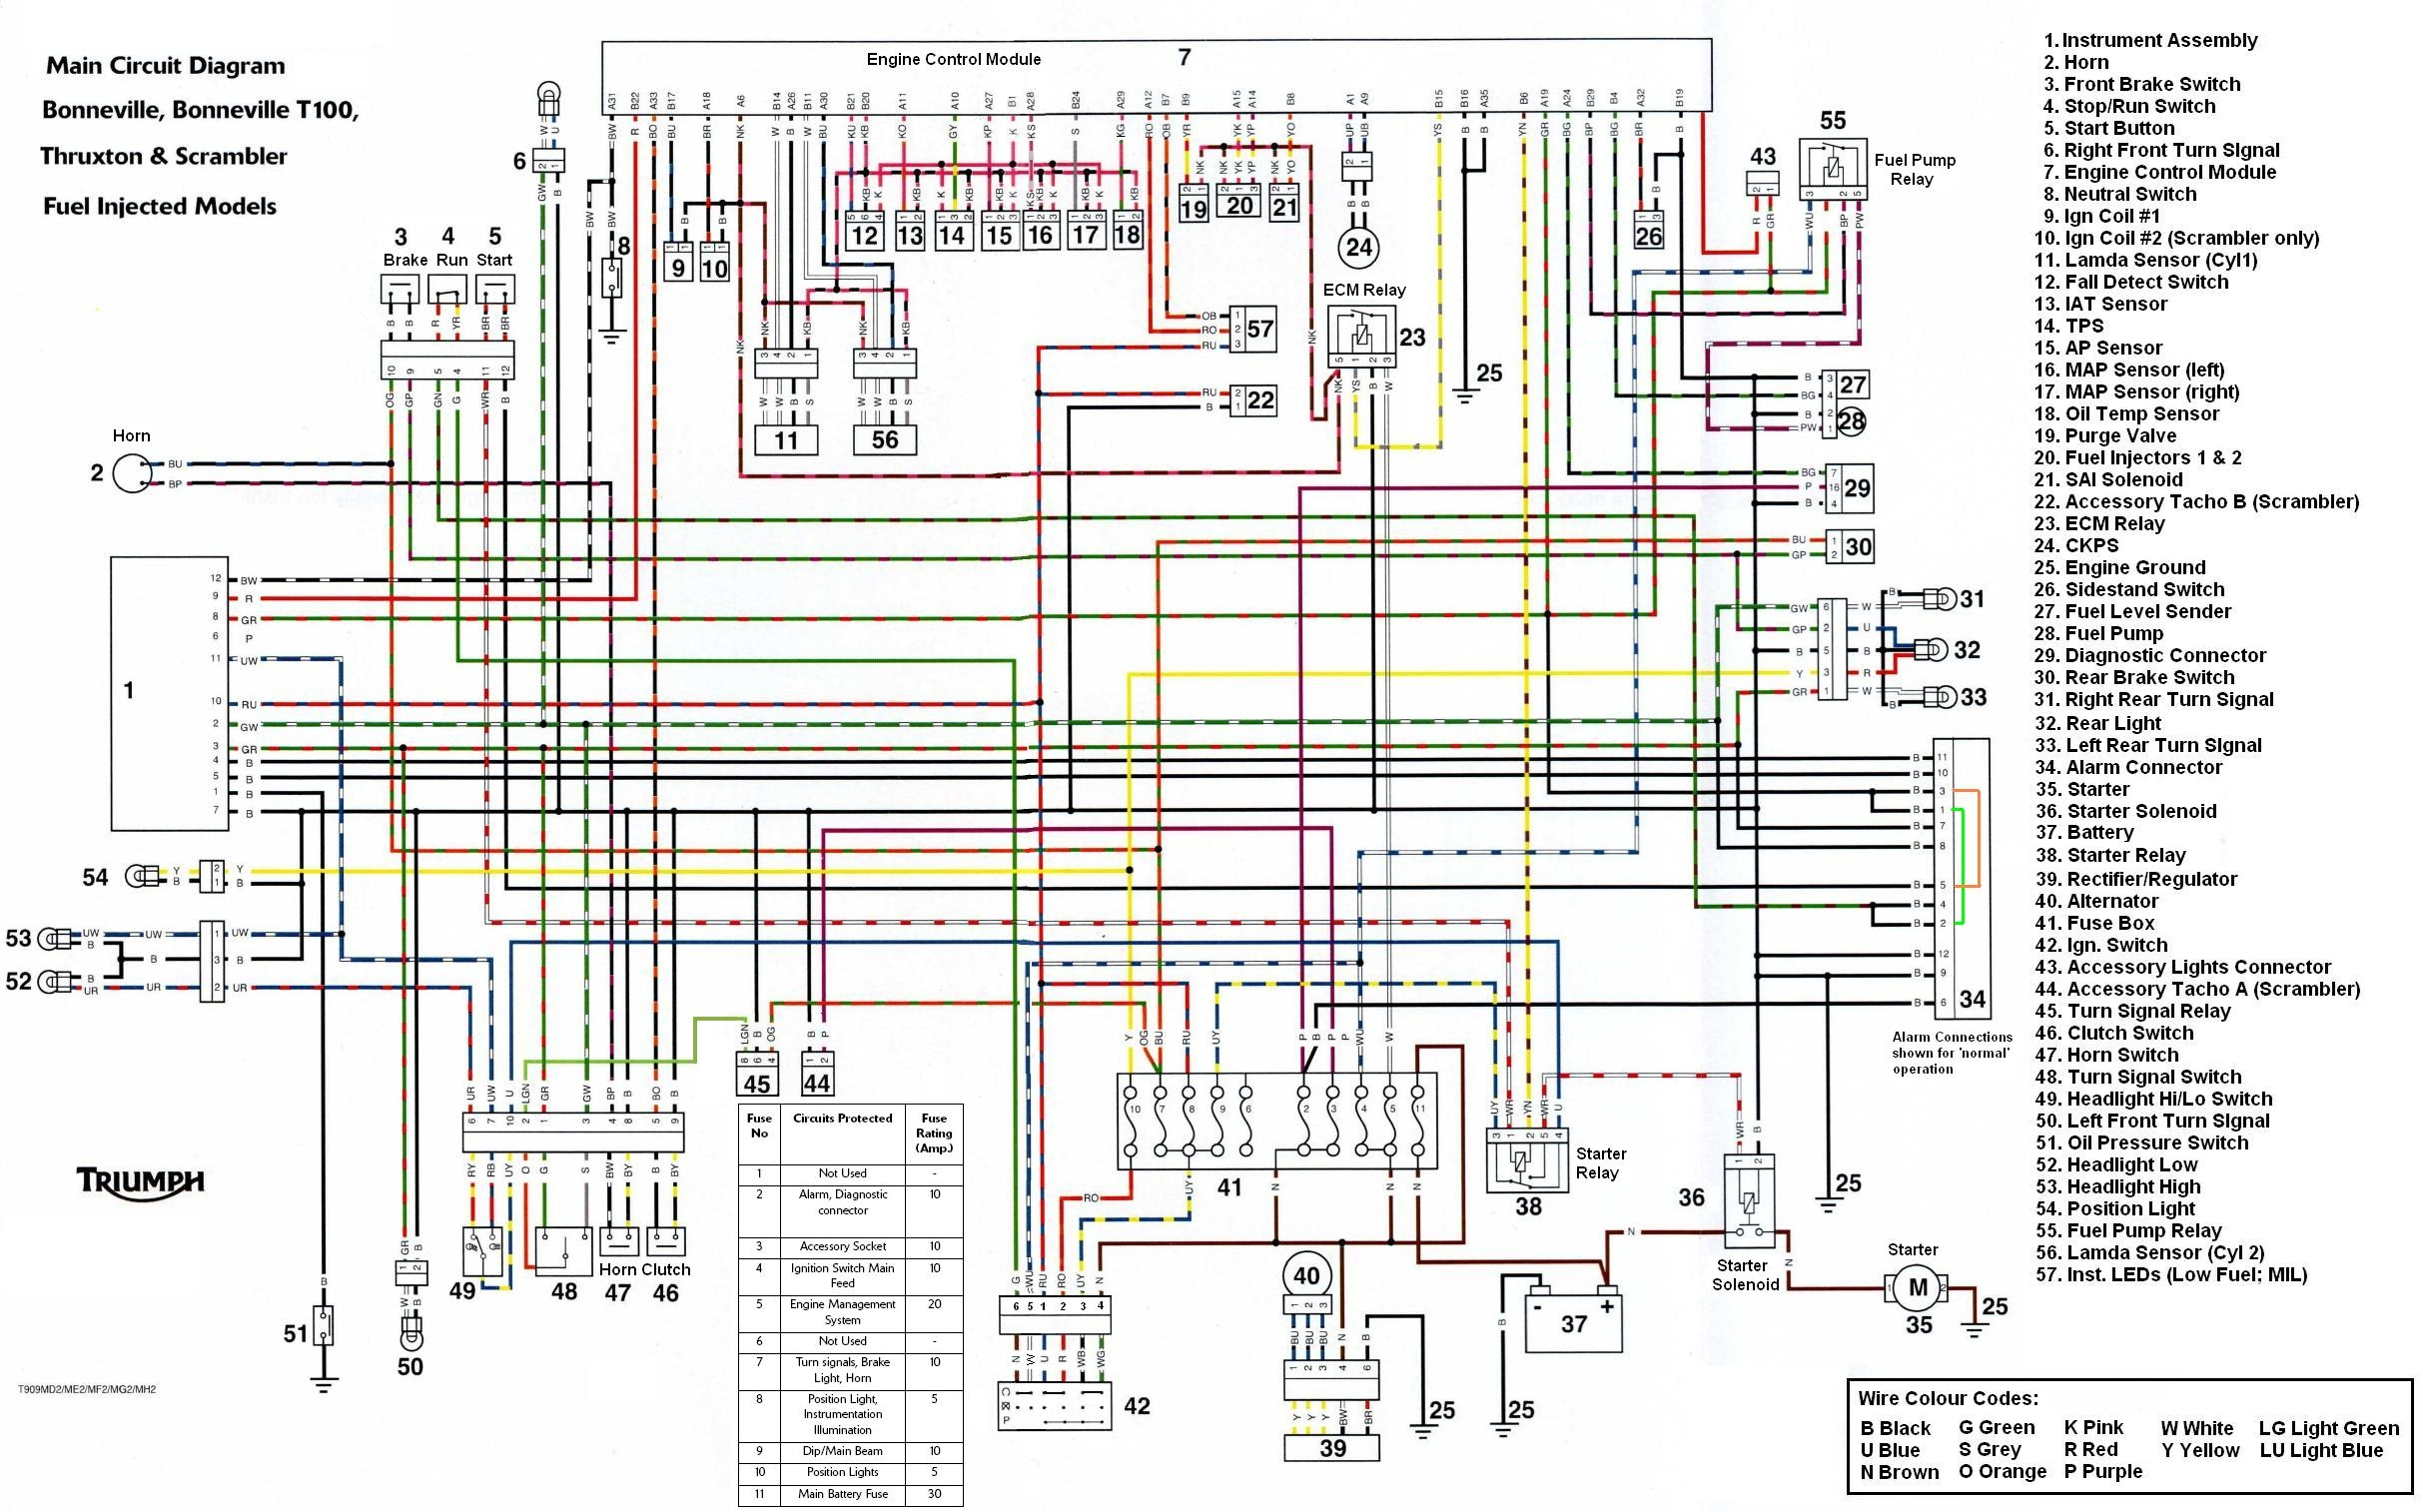 wiring diagram triumph bonneville data wiring diagram Triumph Bonneville Parts Diagram